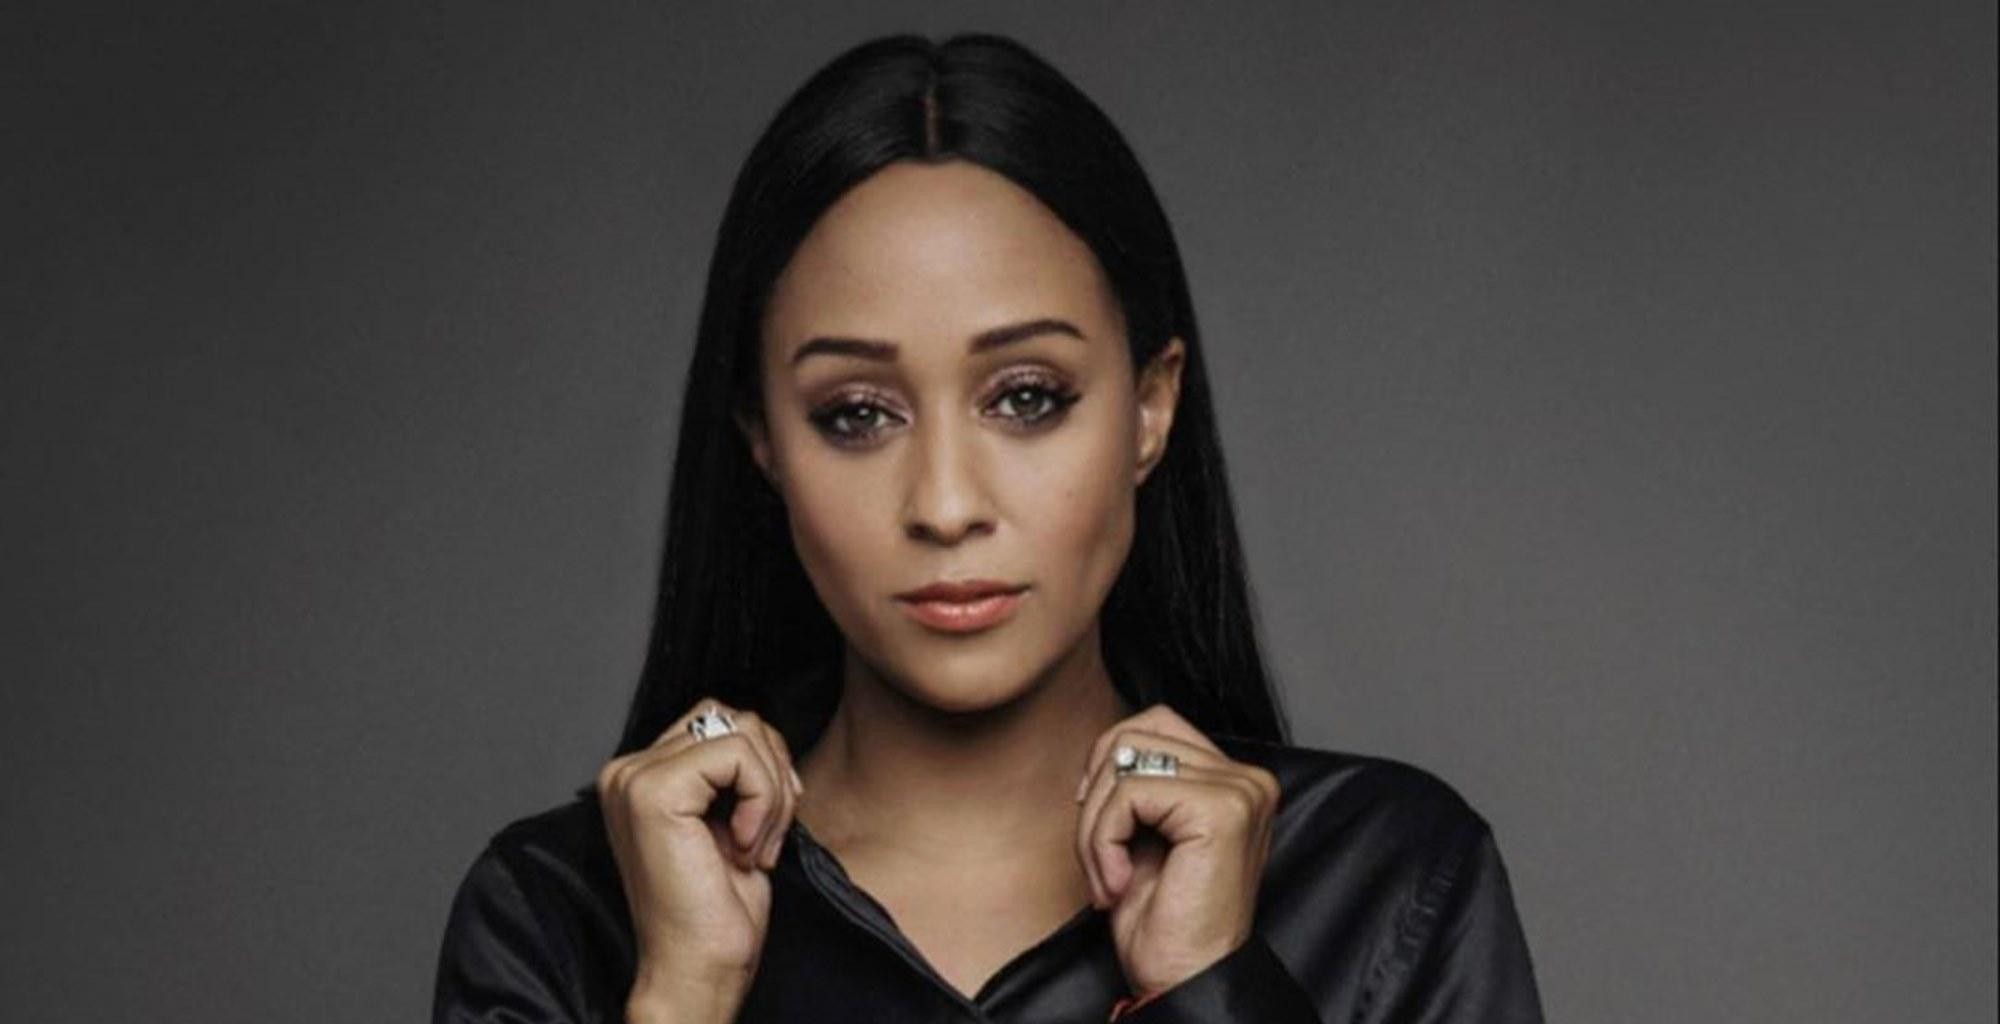 Tia Mowry Flaunts Her Stunning Beach Body In This Video As Part Of A Sweet Request